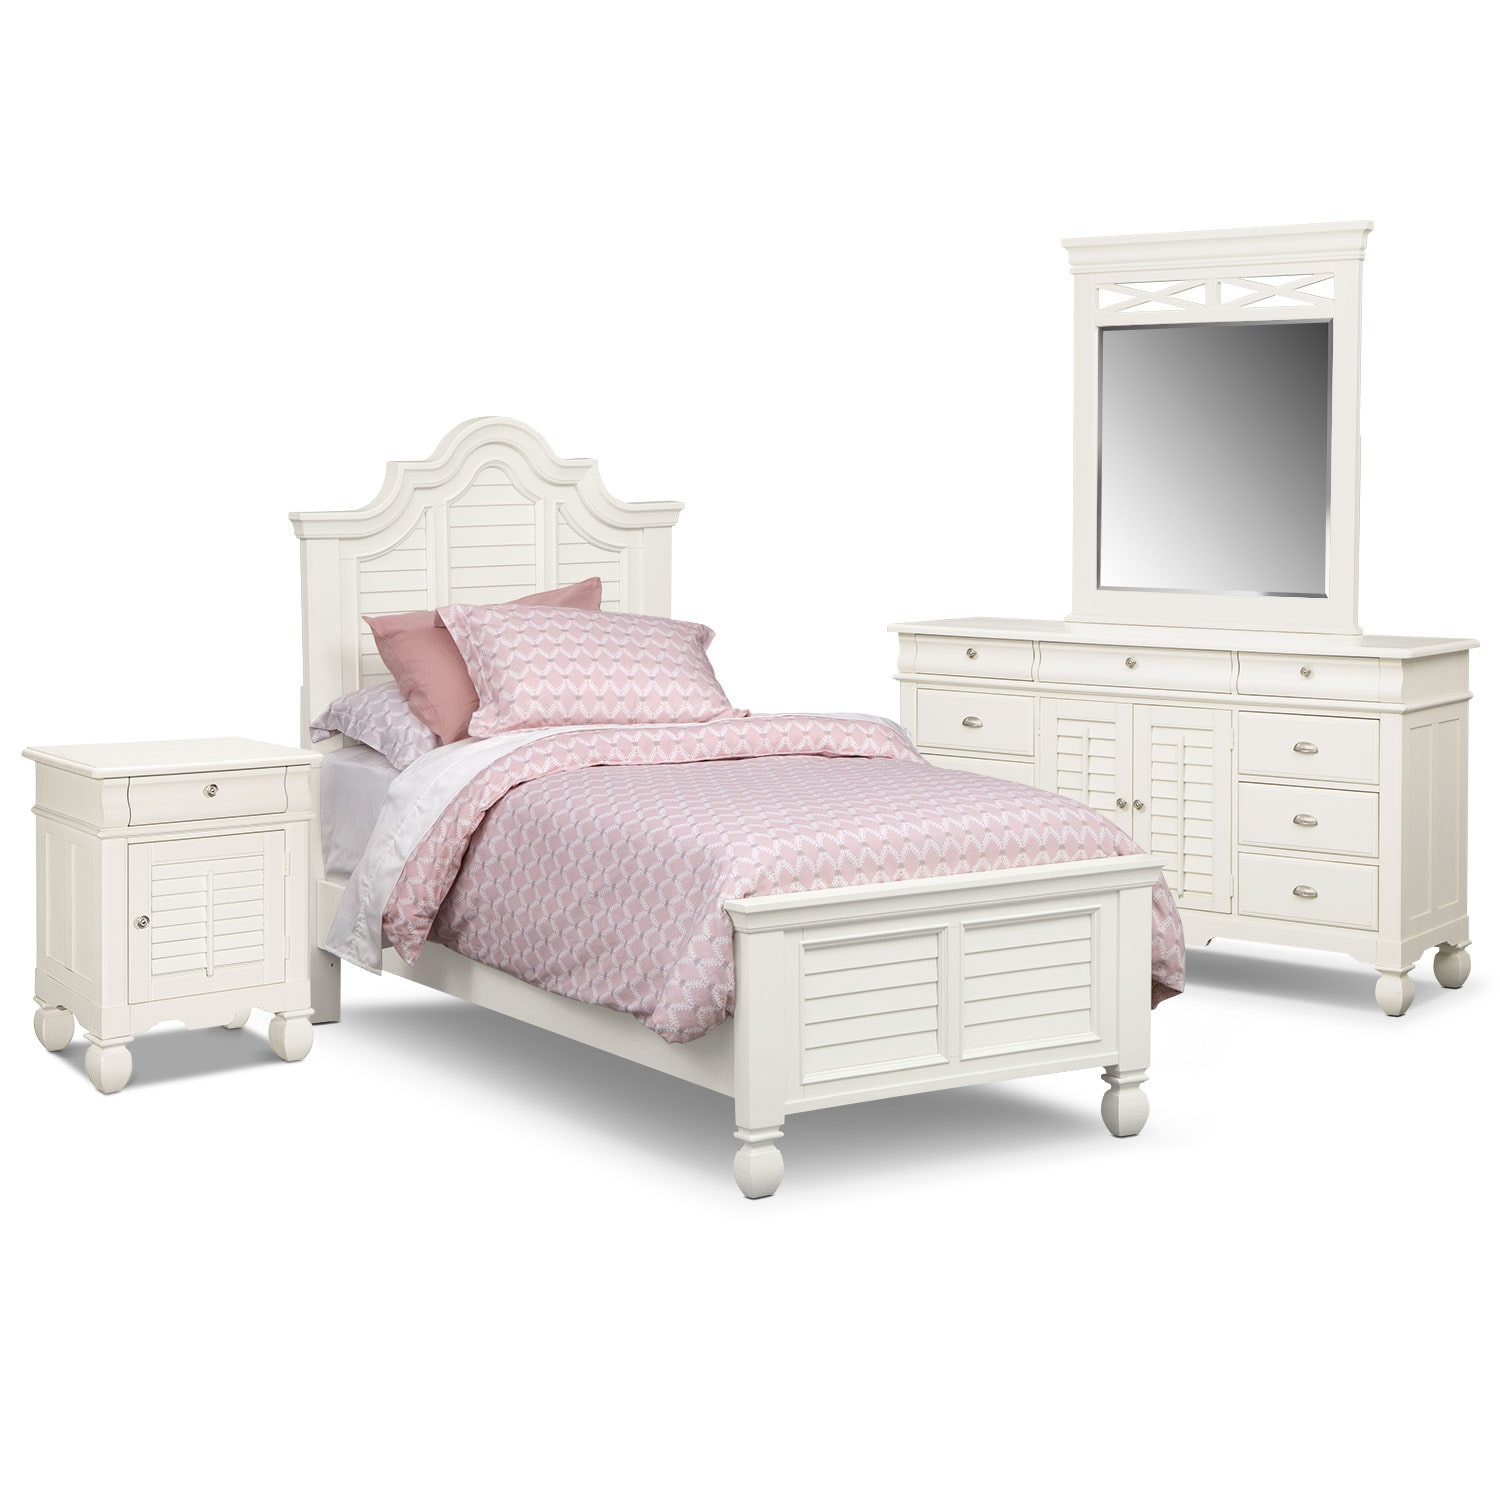 Plantation Cove 6-Piece Twin Bedroom Set with Door Nightstand - White